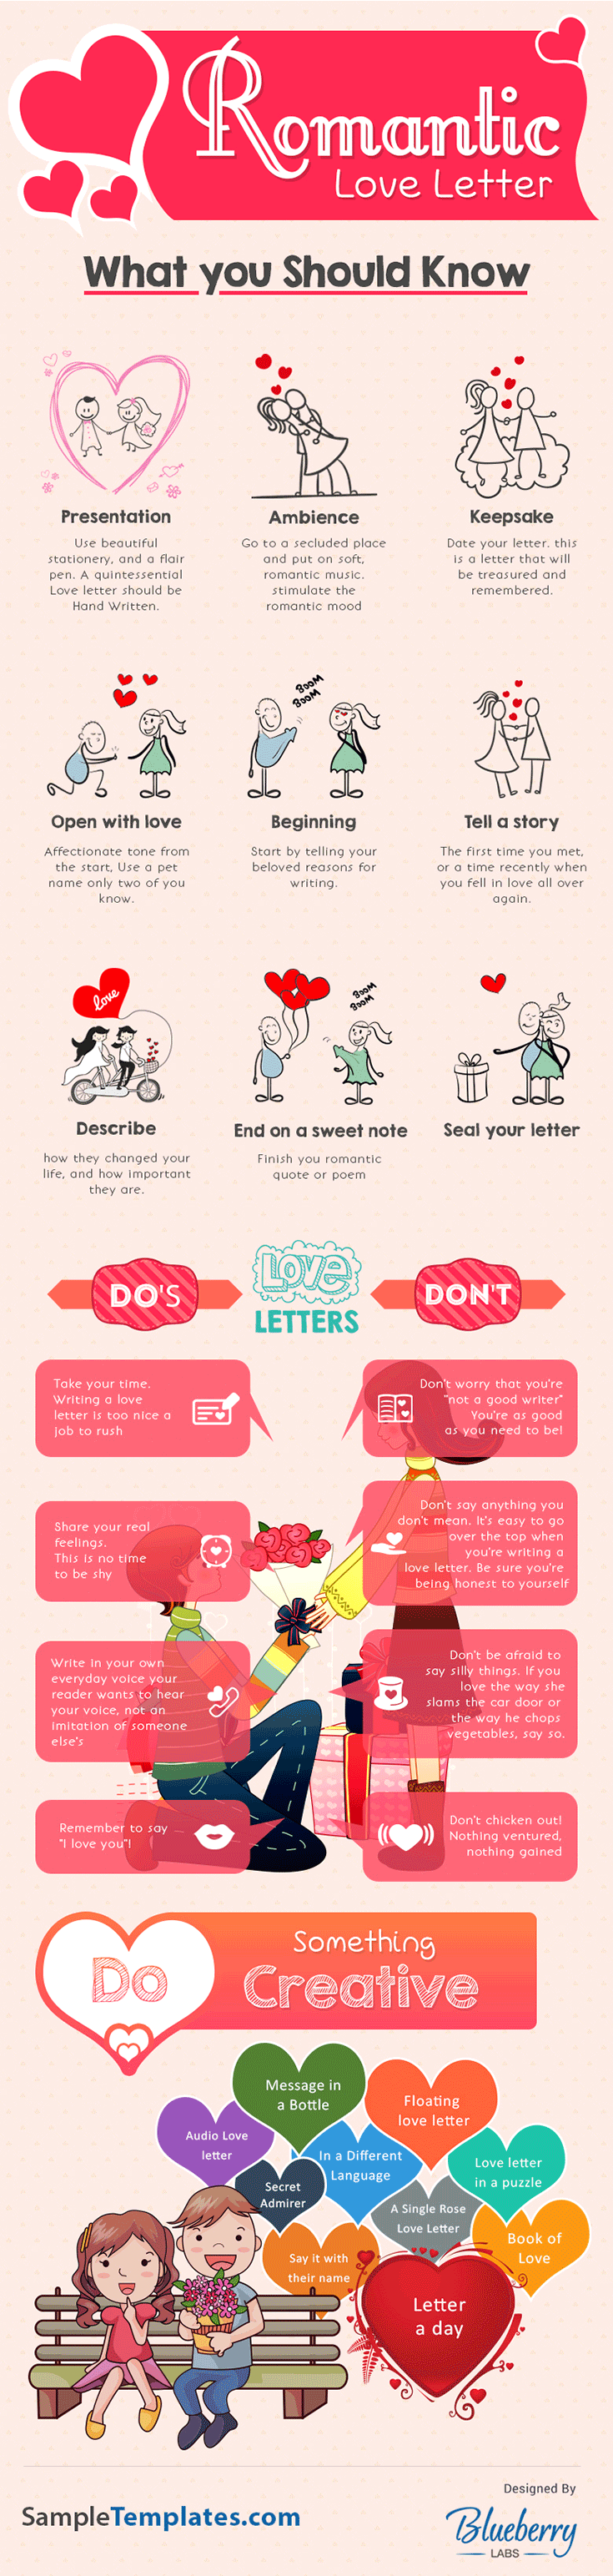 How to Write a Love Letter A Romantic Infographic – How to Write Romantic Letters